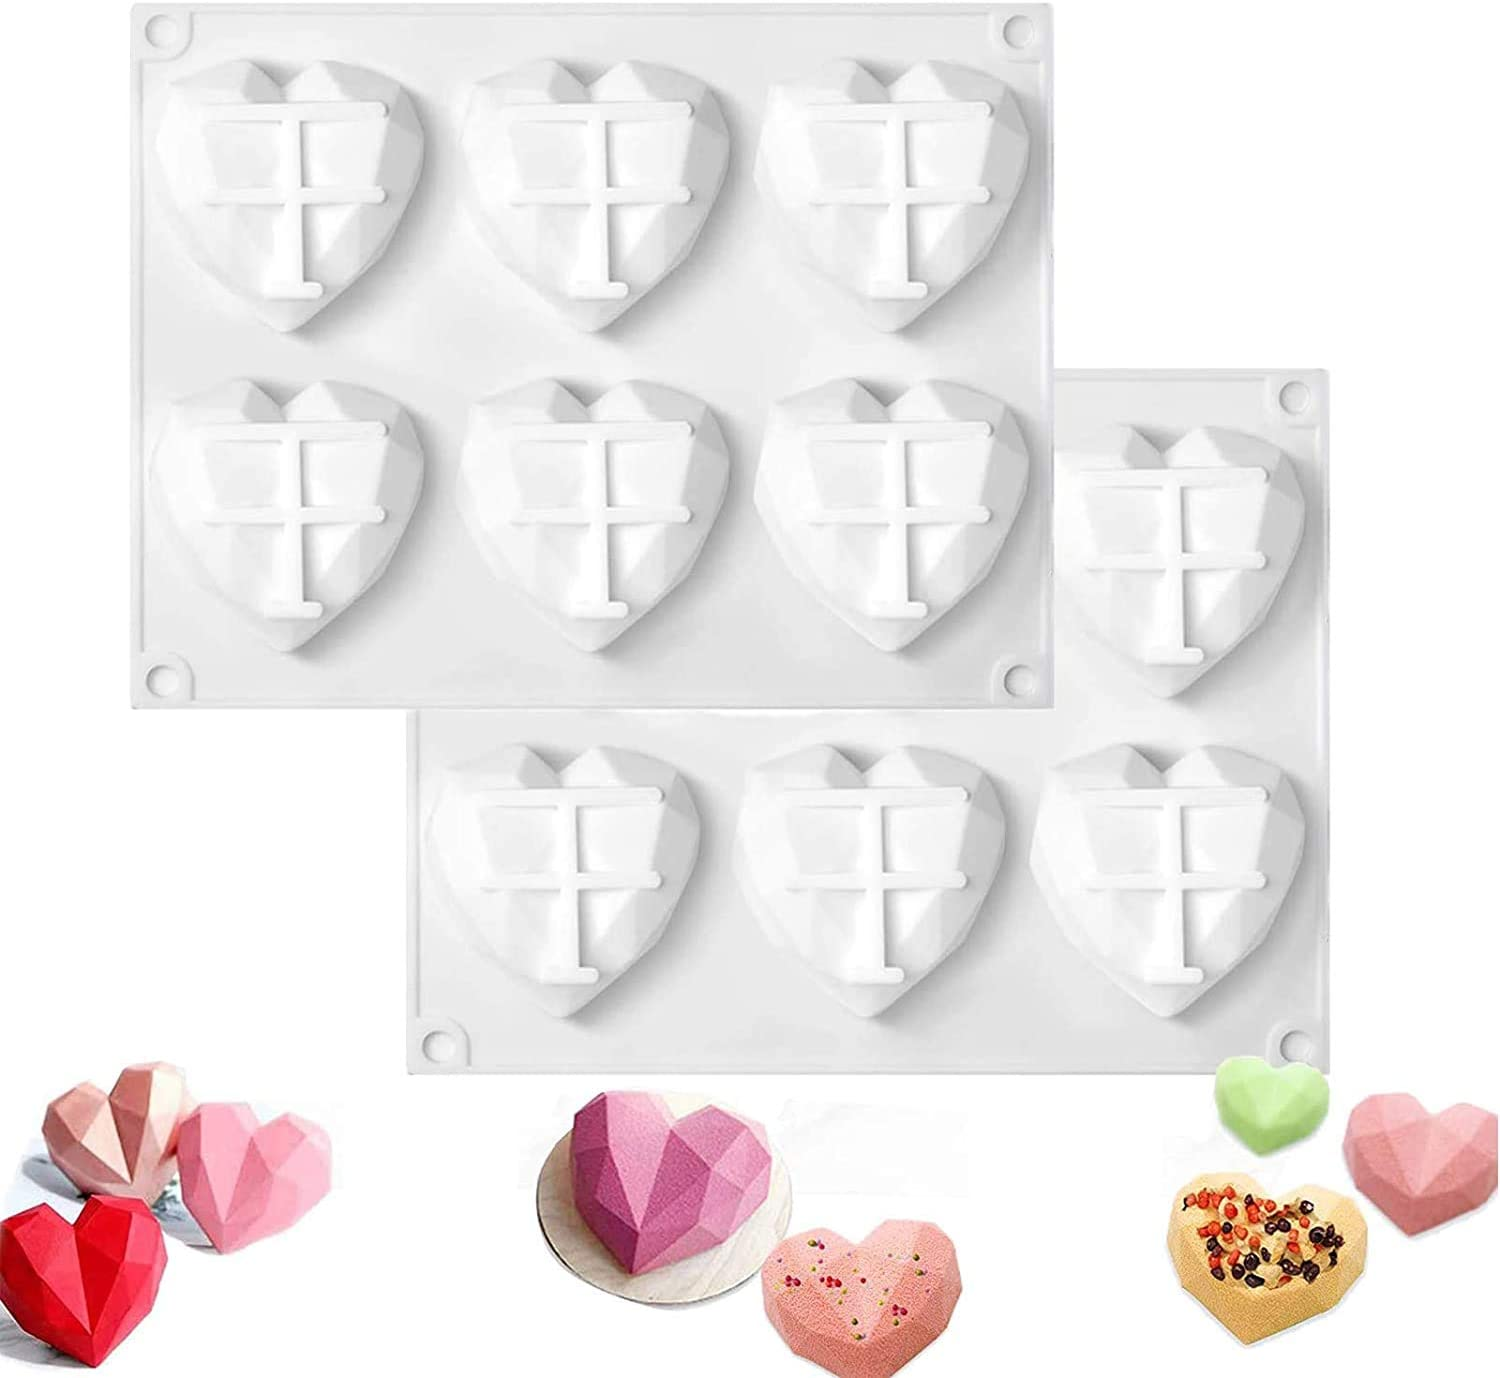 2 Pack Diamond Heart Silicone Mold,Valentine's Day Felt Heart Ornaments Hanging Heart Shaped Cutouts Embellishments with String Loop for Valentine's Day